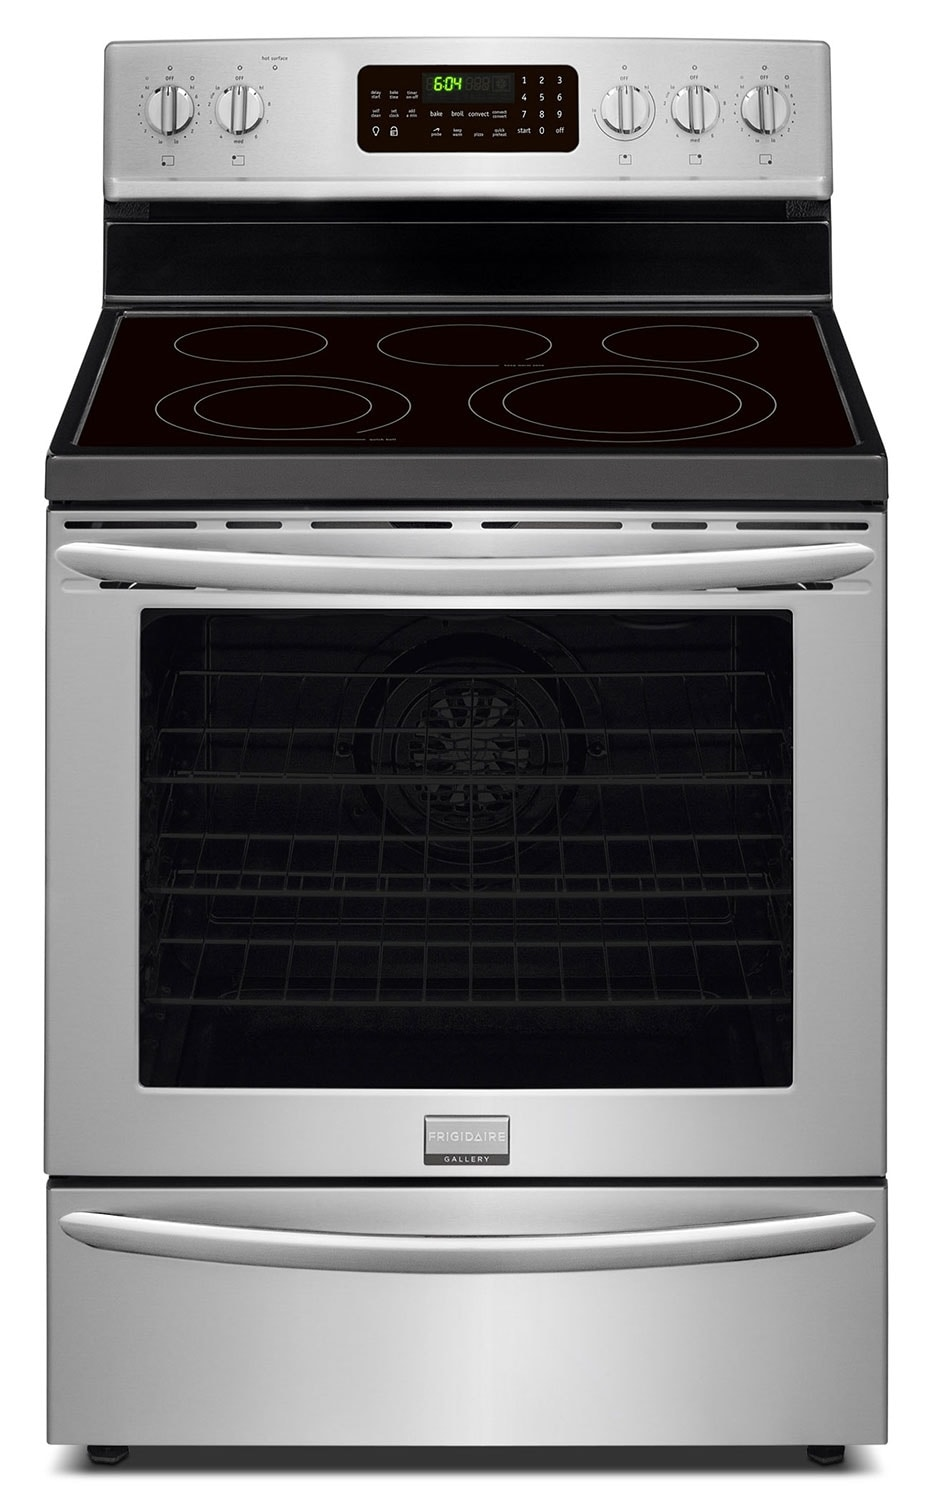 Frigidaire Gallery Stainless Steel Freestanding Electric Convection Range (5.8 Cu. Ft.) - CGEF3058RF